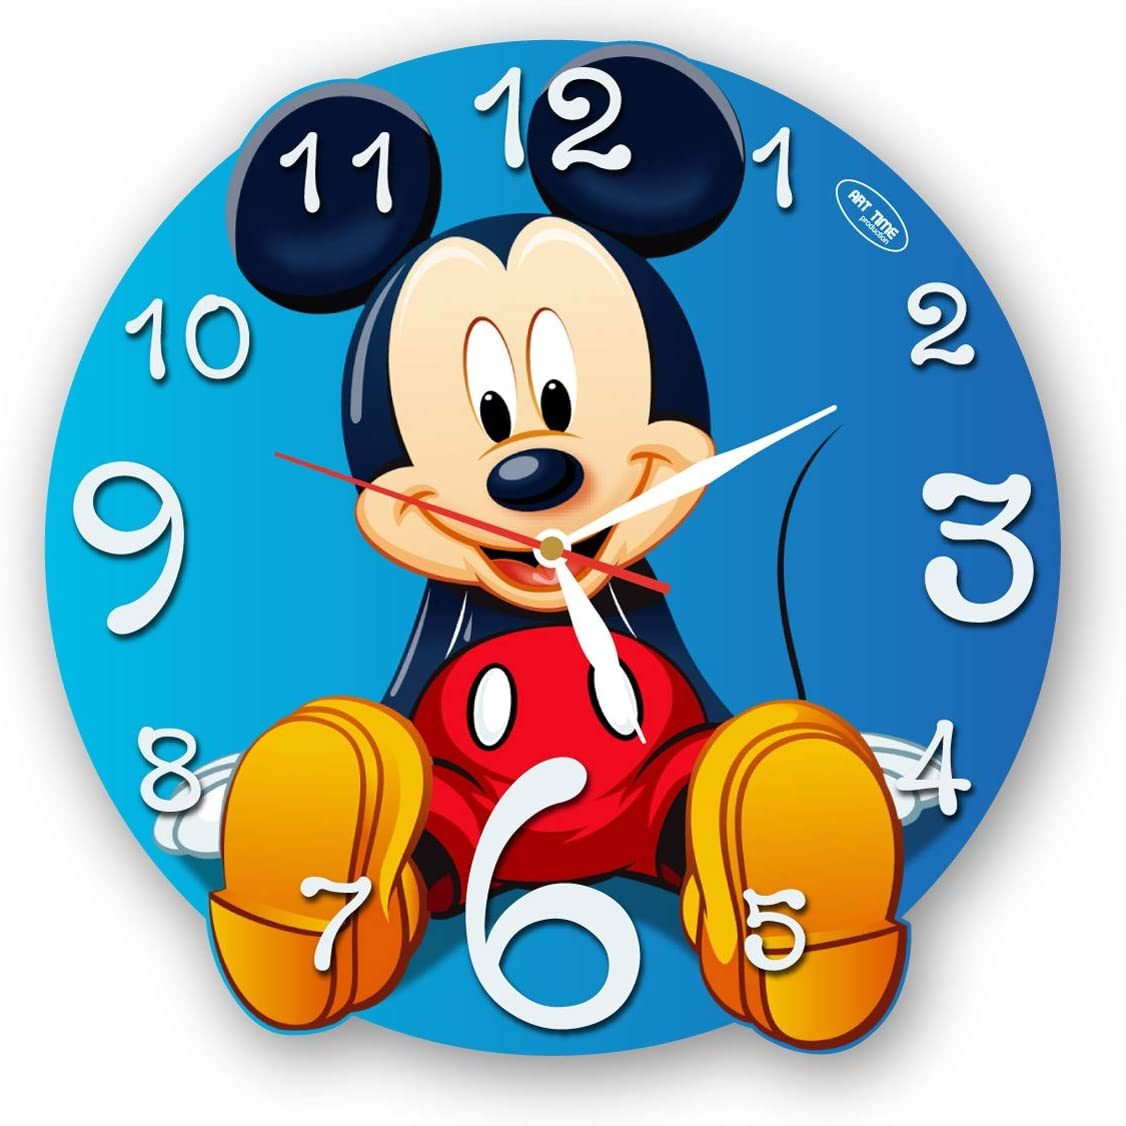 A picture of the micky mouse clock